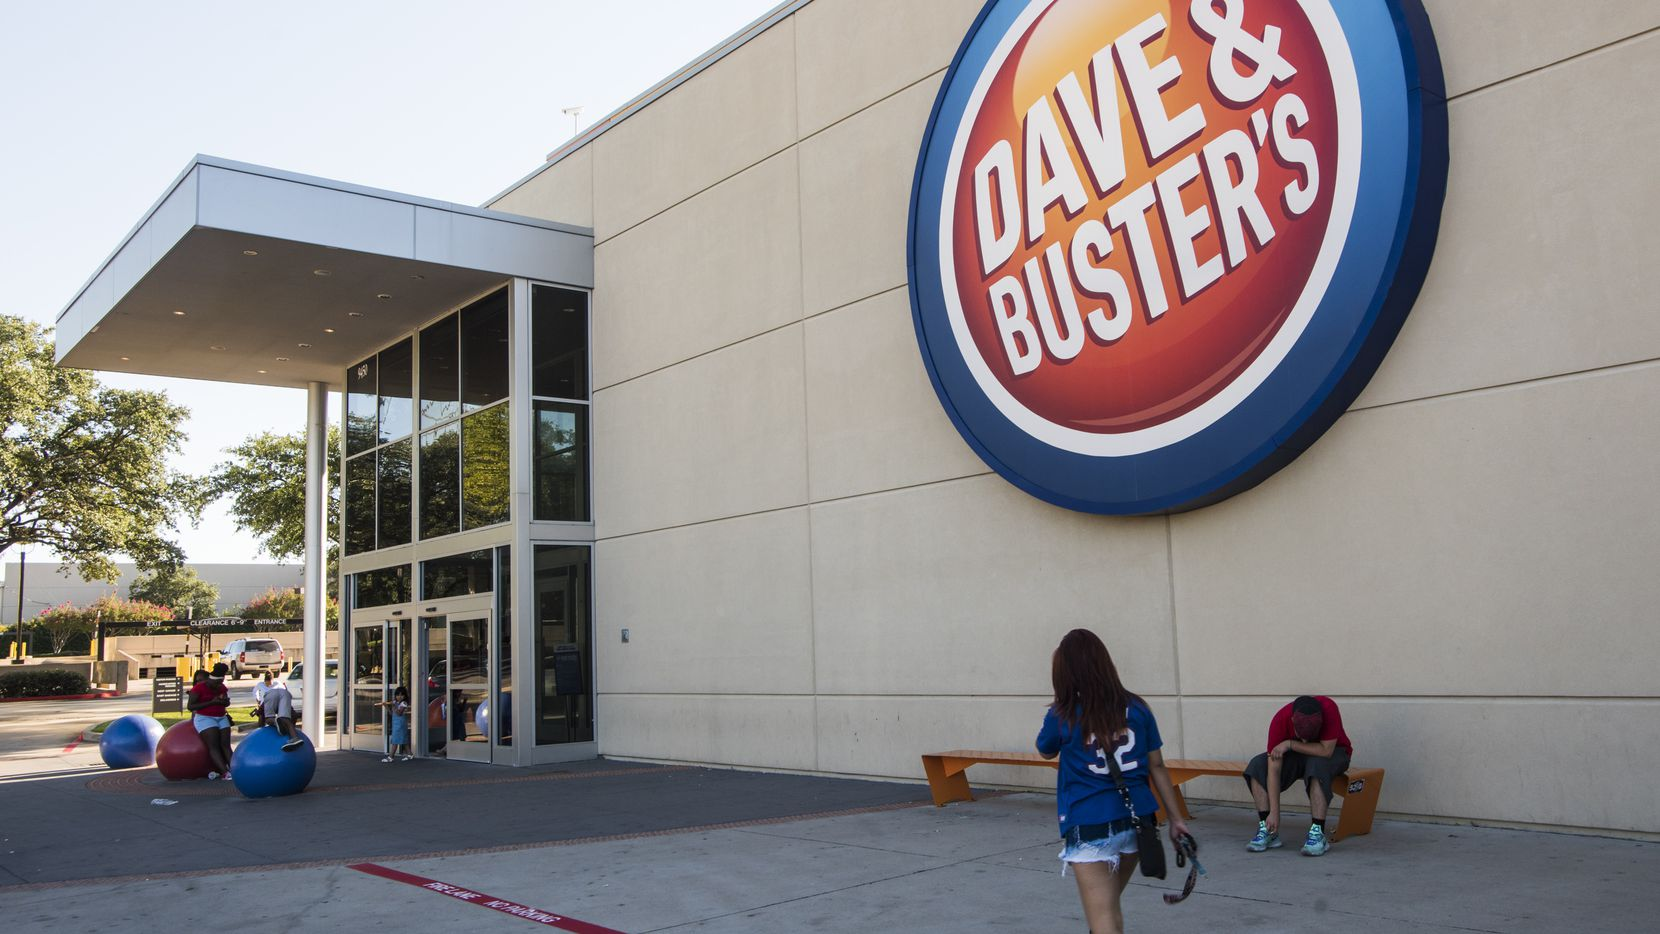 Dave & Buster's lost $43.5 million in the quarter ending on May 3 after enduring six weeks of store closures to help stop the spread of COVID-19. The company said it expects all 137 of its stores to be reopened by September. (Rex C. Curry/Special Contributor)